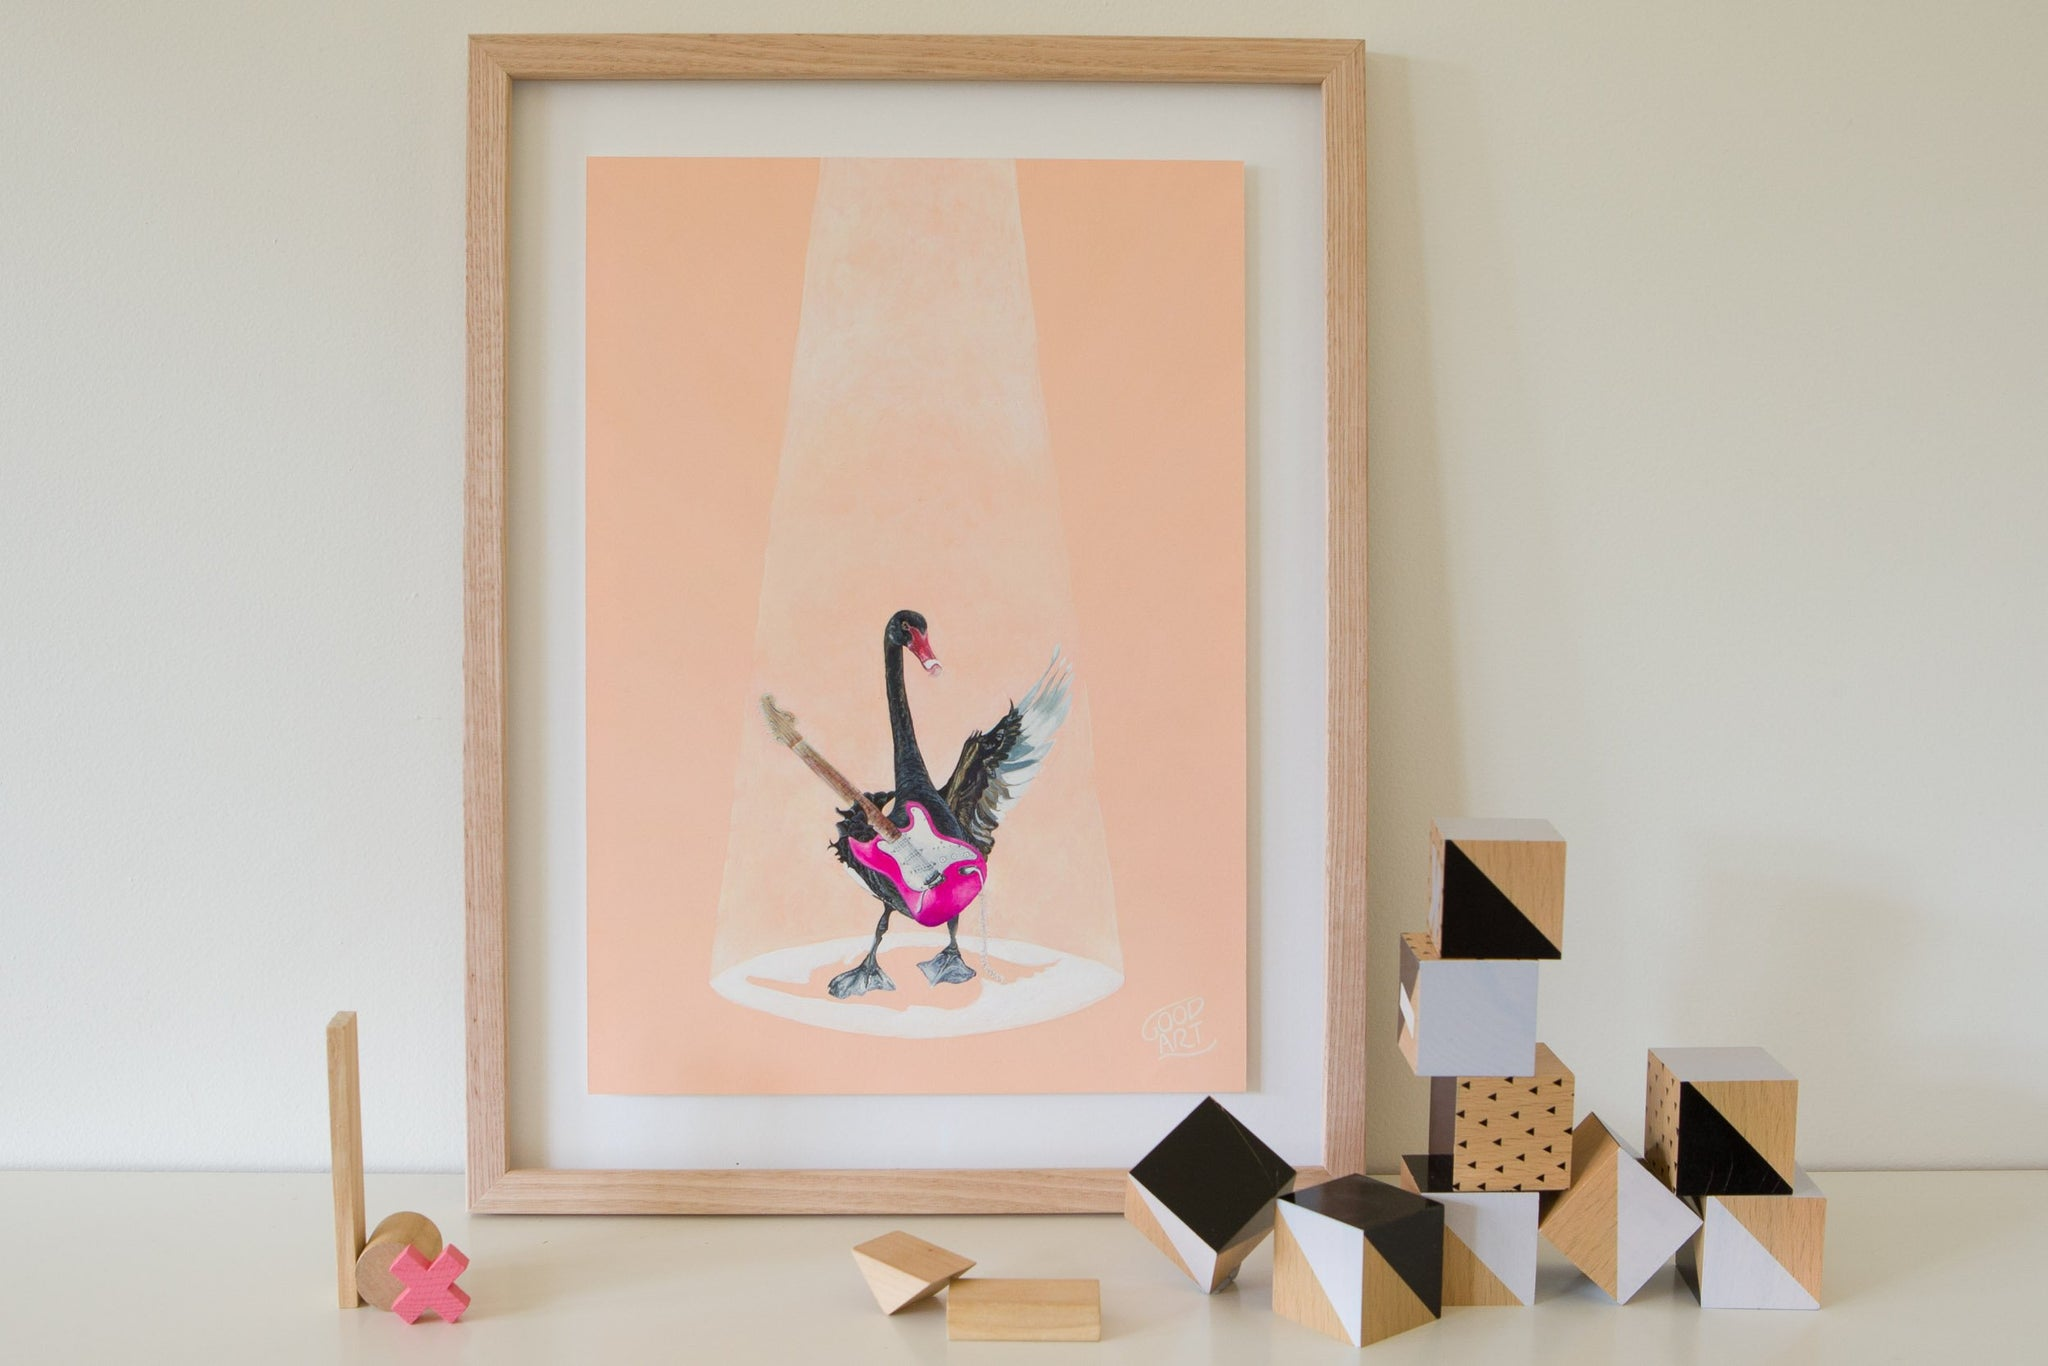 A painting of a black swan playing a pink electric guitar on blush coloured background. An art print  for kids bedroom. Painted by artist Jaelle Pedroli.